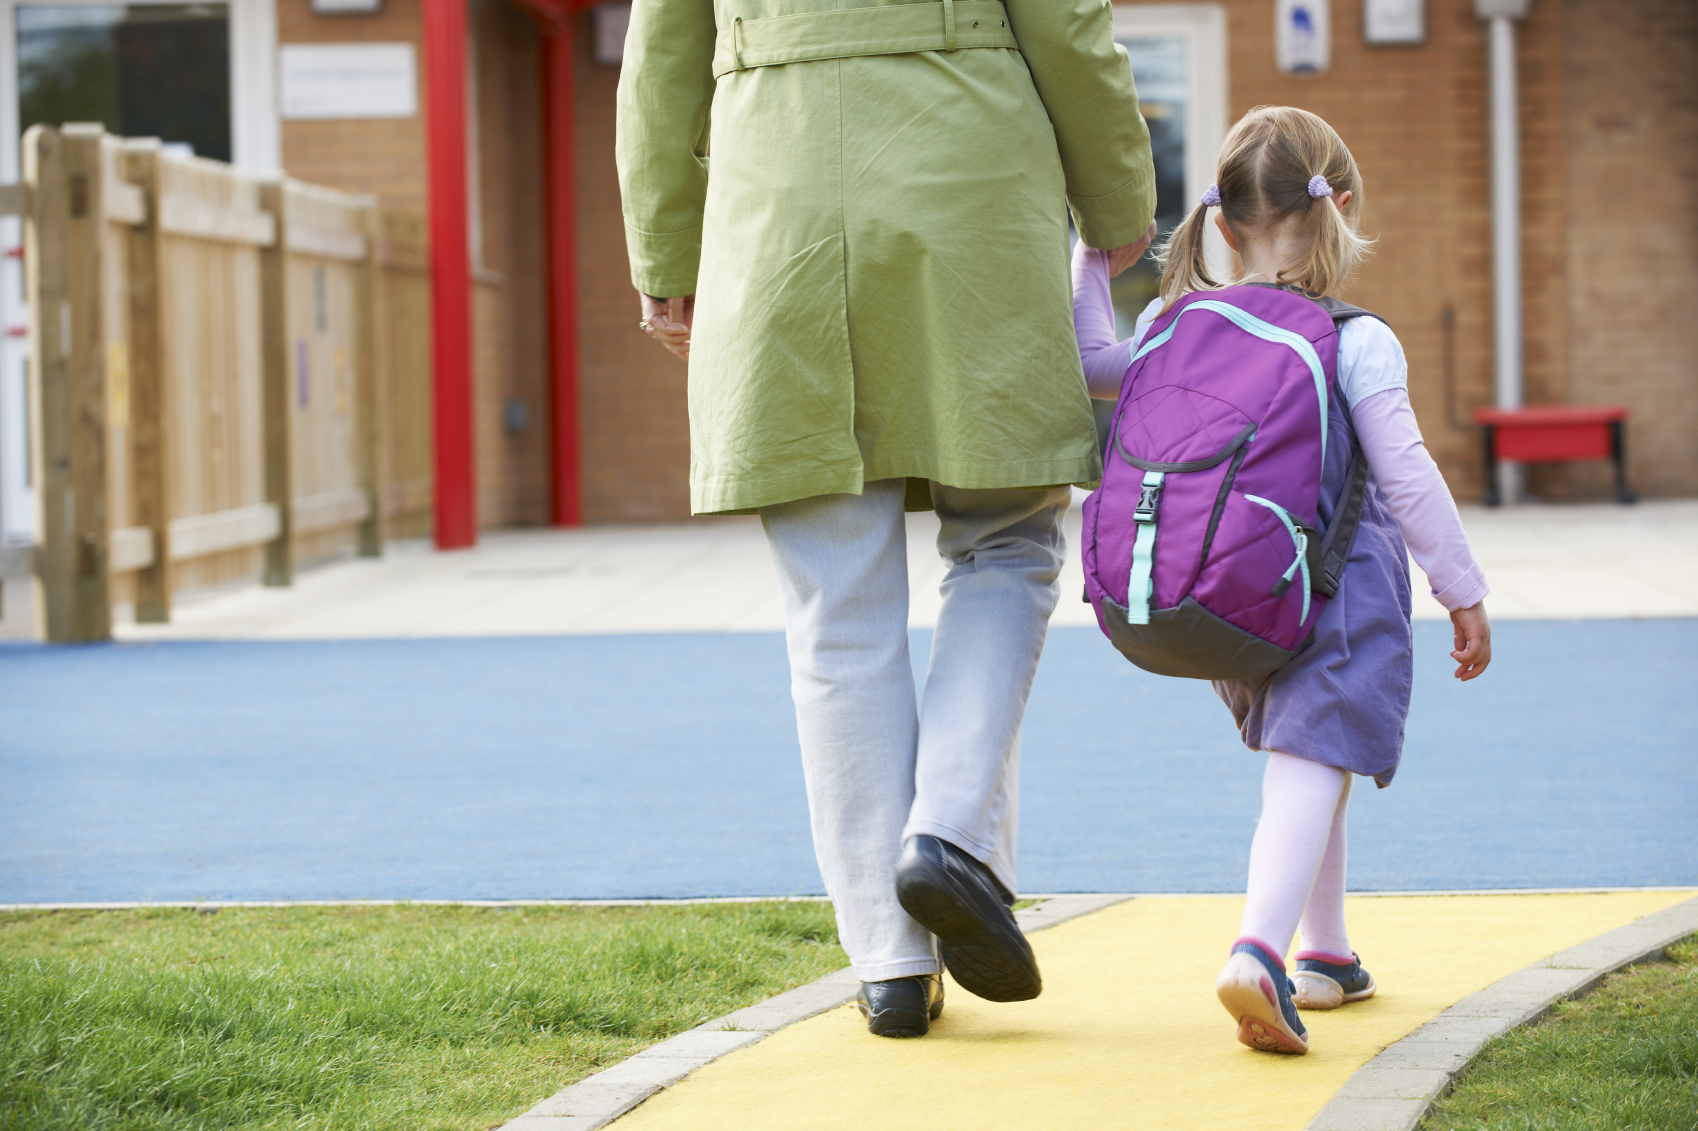 Photo credit: Cabeau, http://www.cabeau.com/blog/2013/07/30/keeping-your-kids-safe-as-they-go-back-to-school/